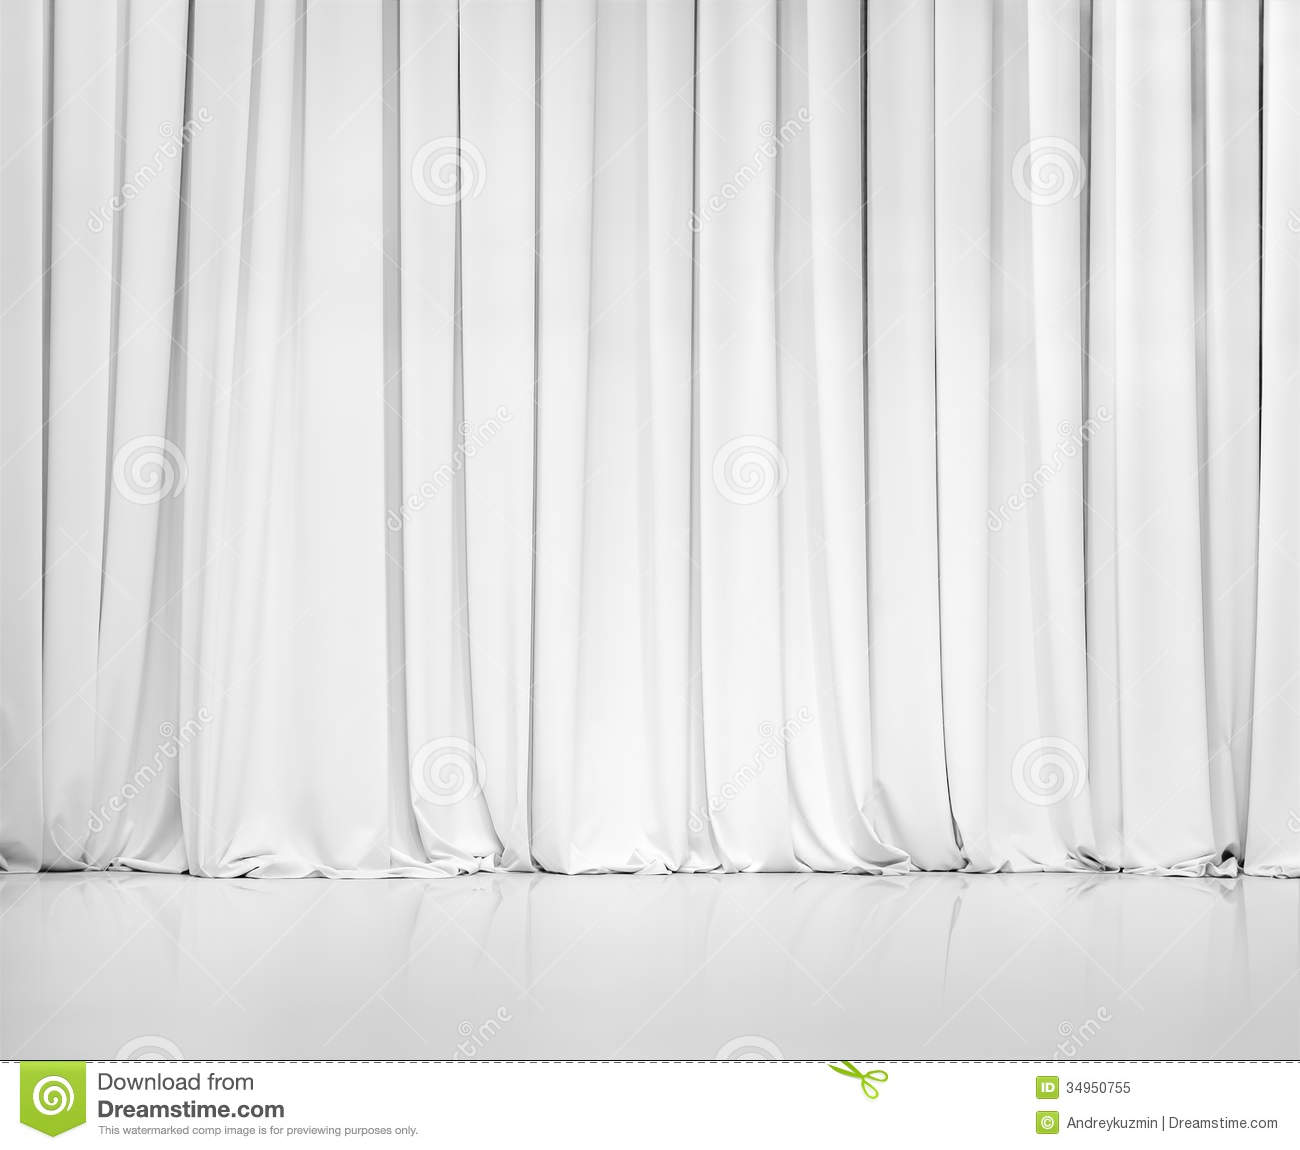 White Curtain Or Drapes Background Royalty Free Stock Photo - Image ...